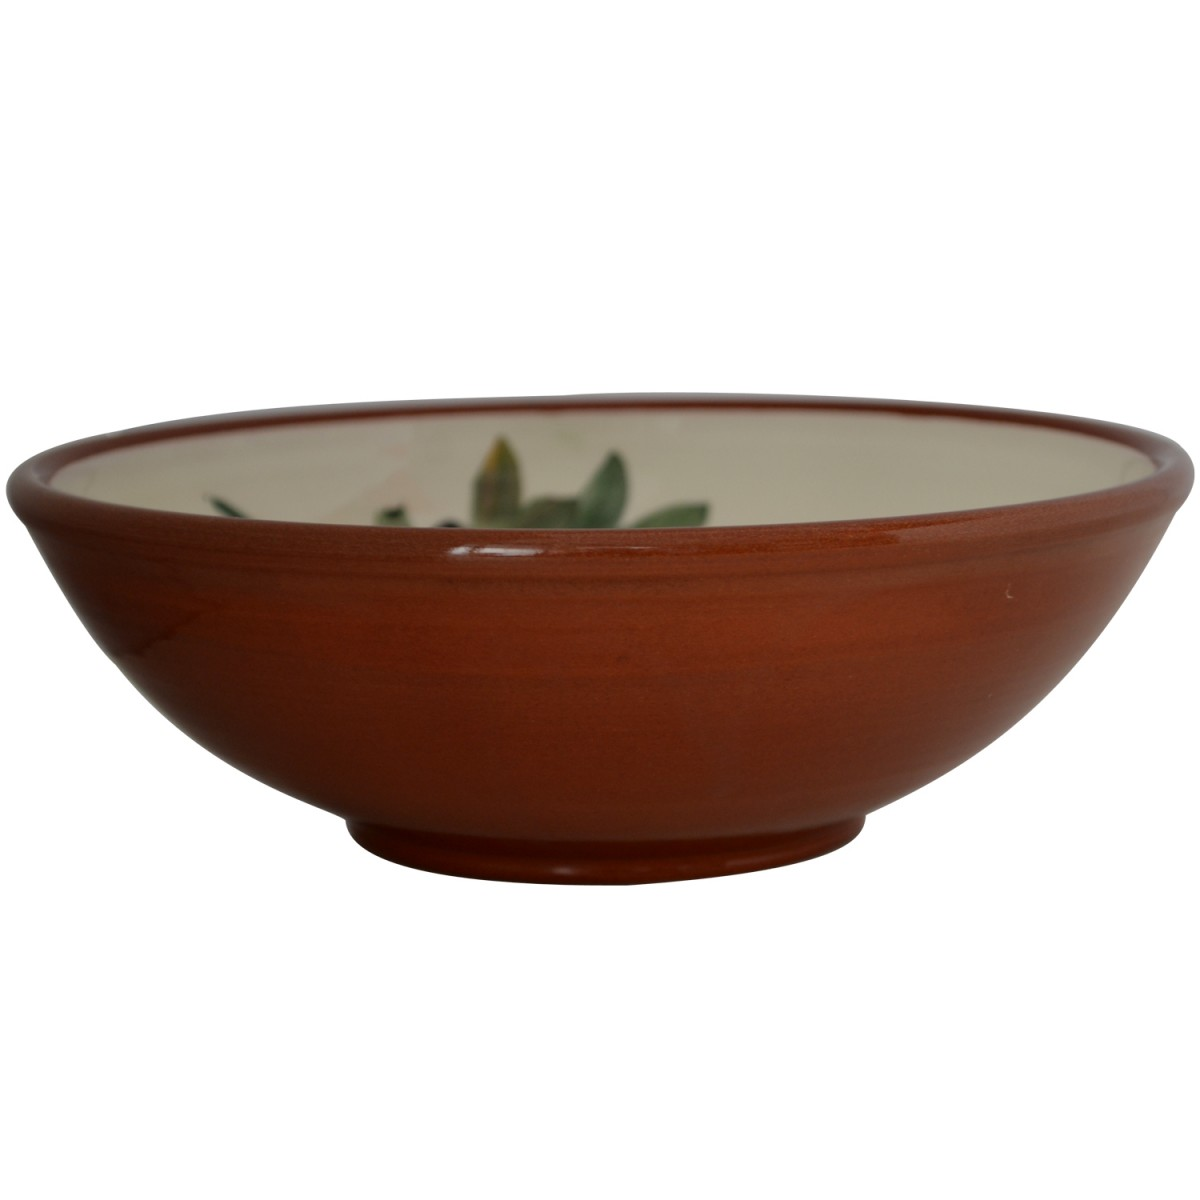 Large Pottery Bowls with hand painted Olives-1